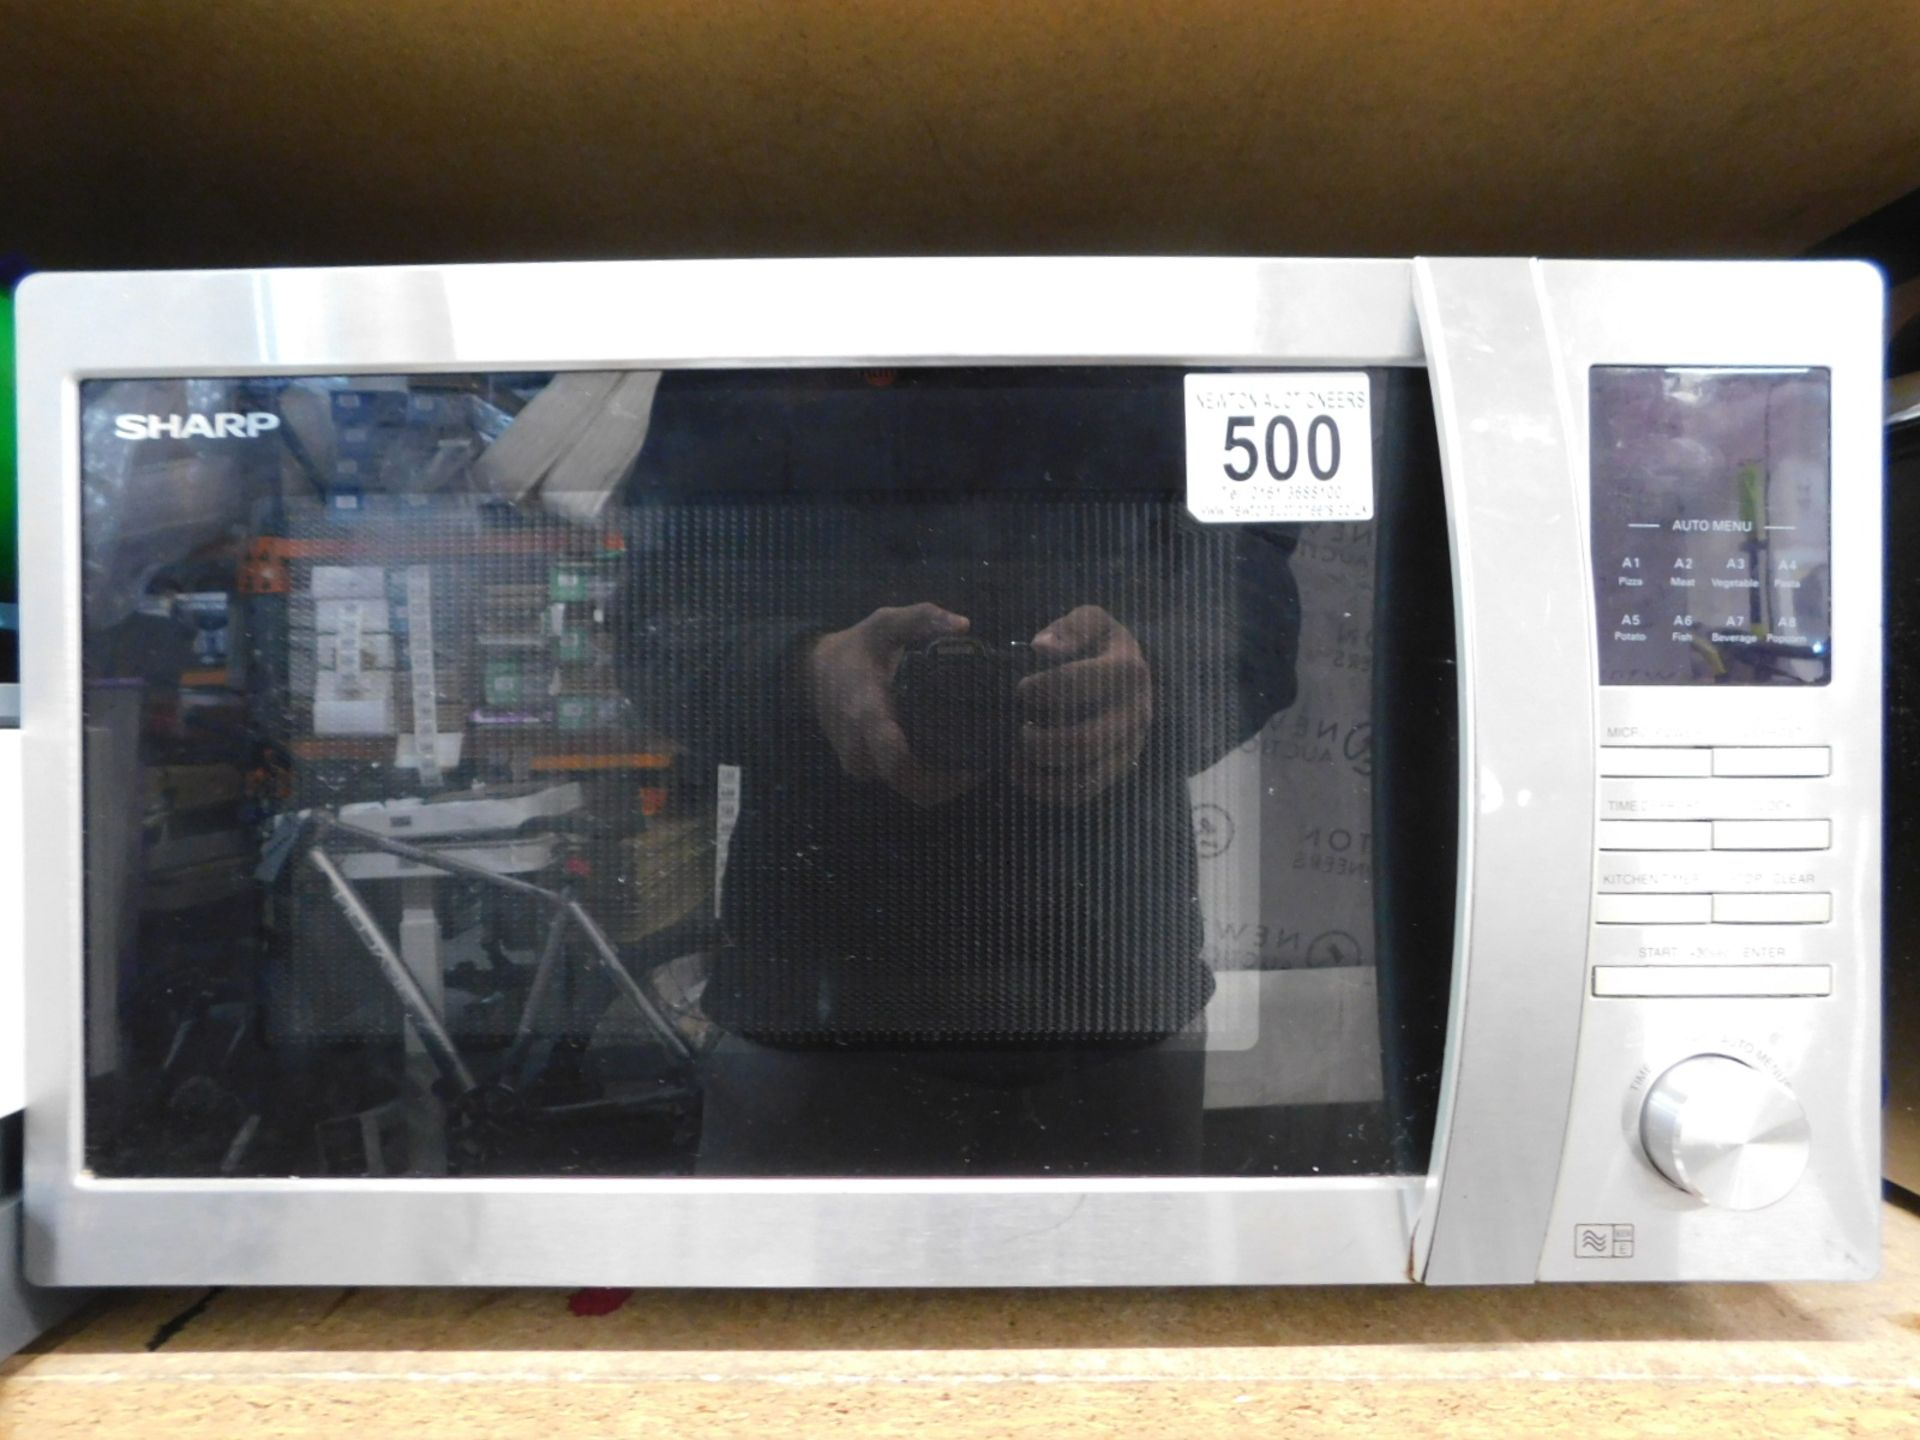 1 SHARP R-322STM 25L STAINLESS STEEL SOLO MICROWAVE OVEN RRP £149.99